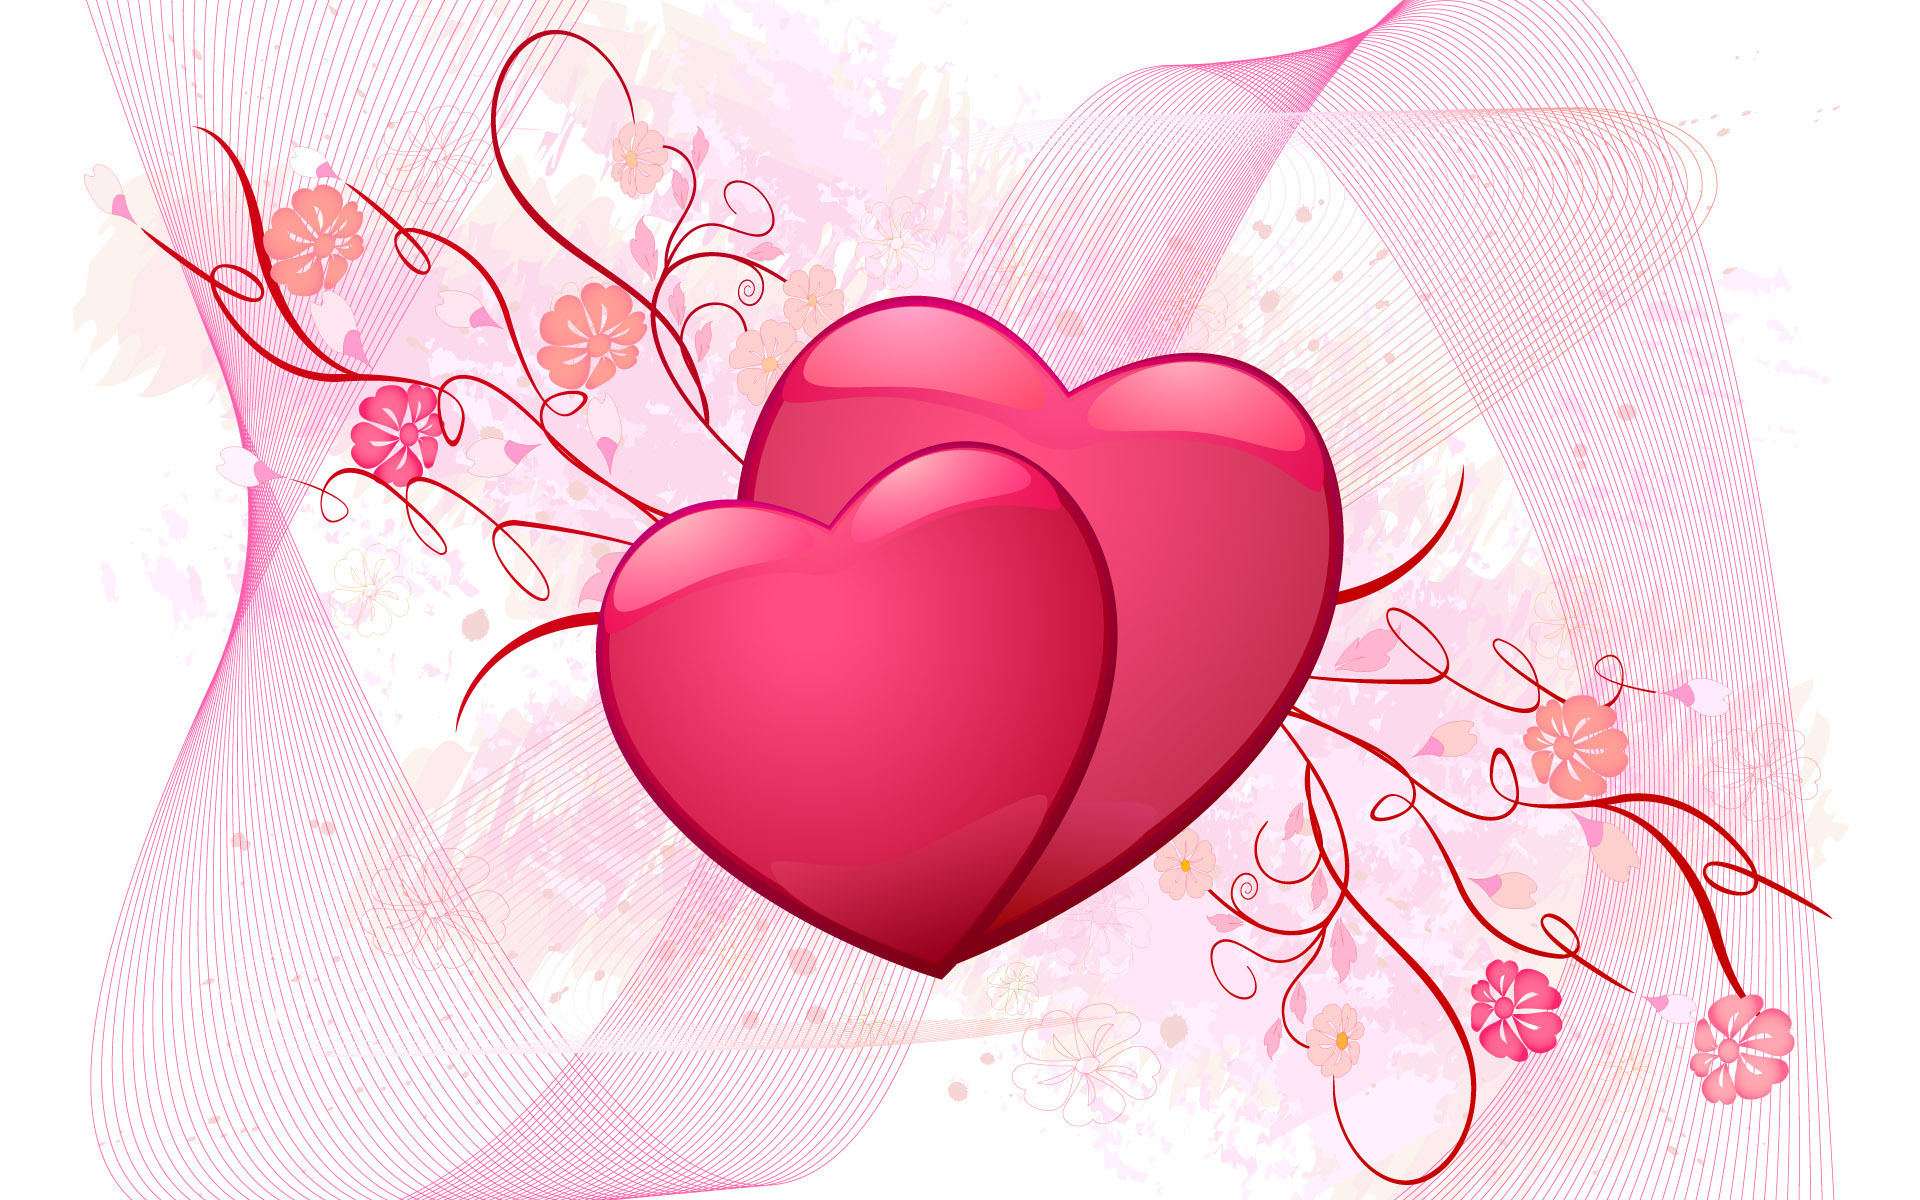 Hearts Love Wallpaper 13864798 Fanpop